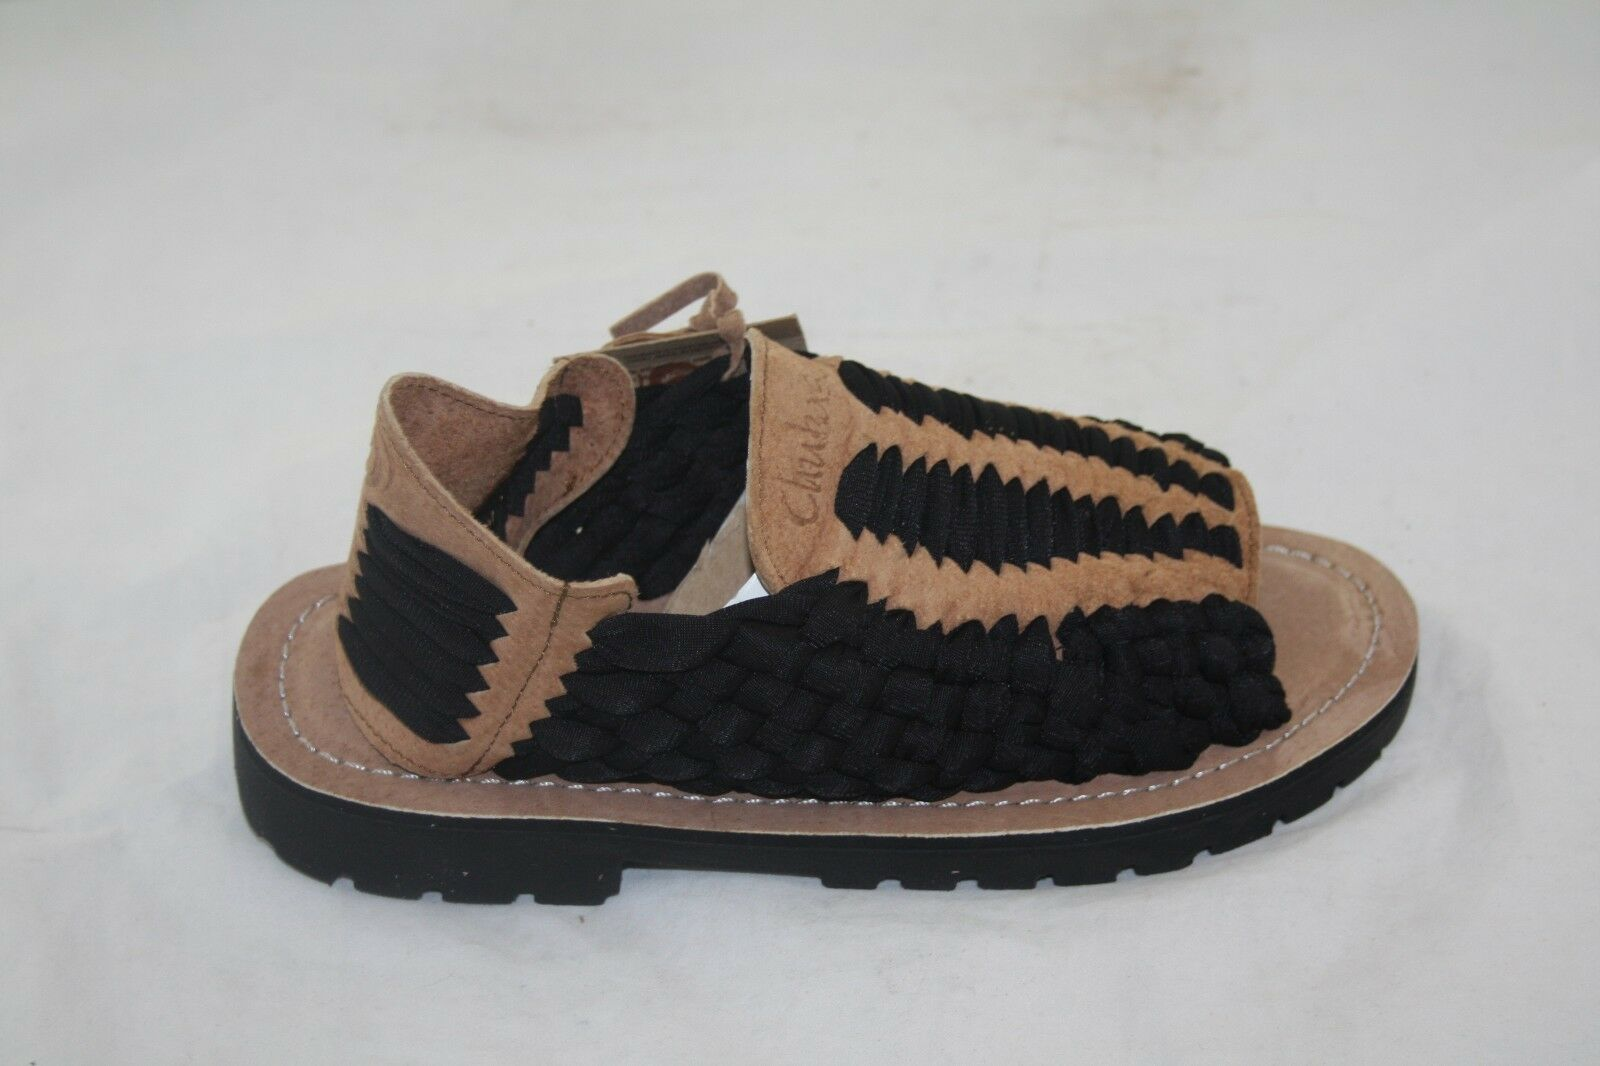 MEN'S CHUBASCO HAND MADE IN MEXICO GUERRERO COFFEE  SANDAL MSRP